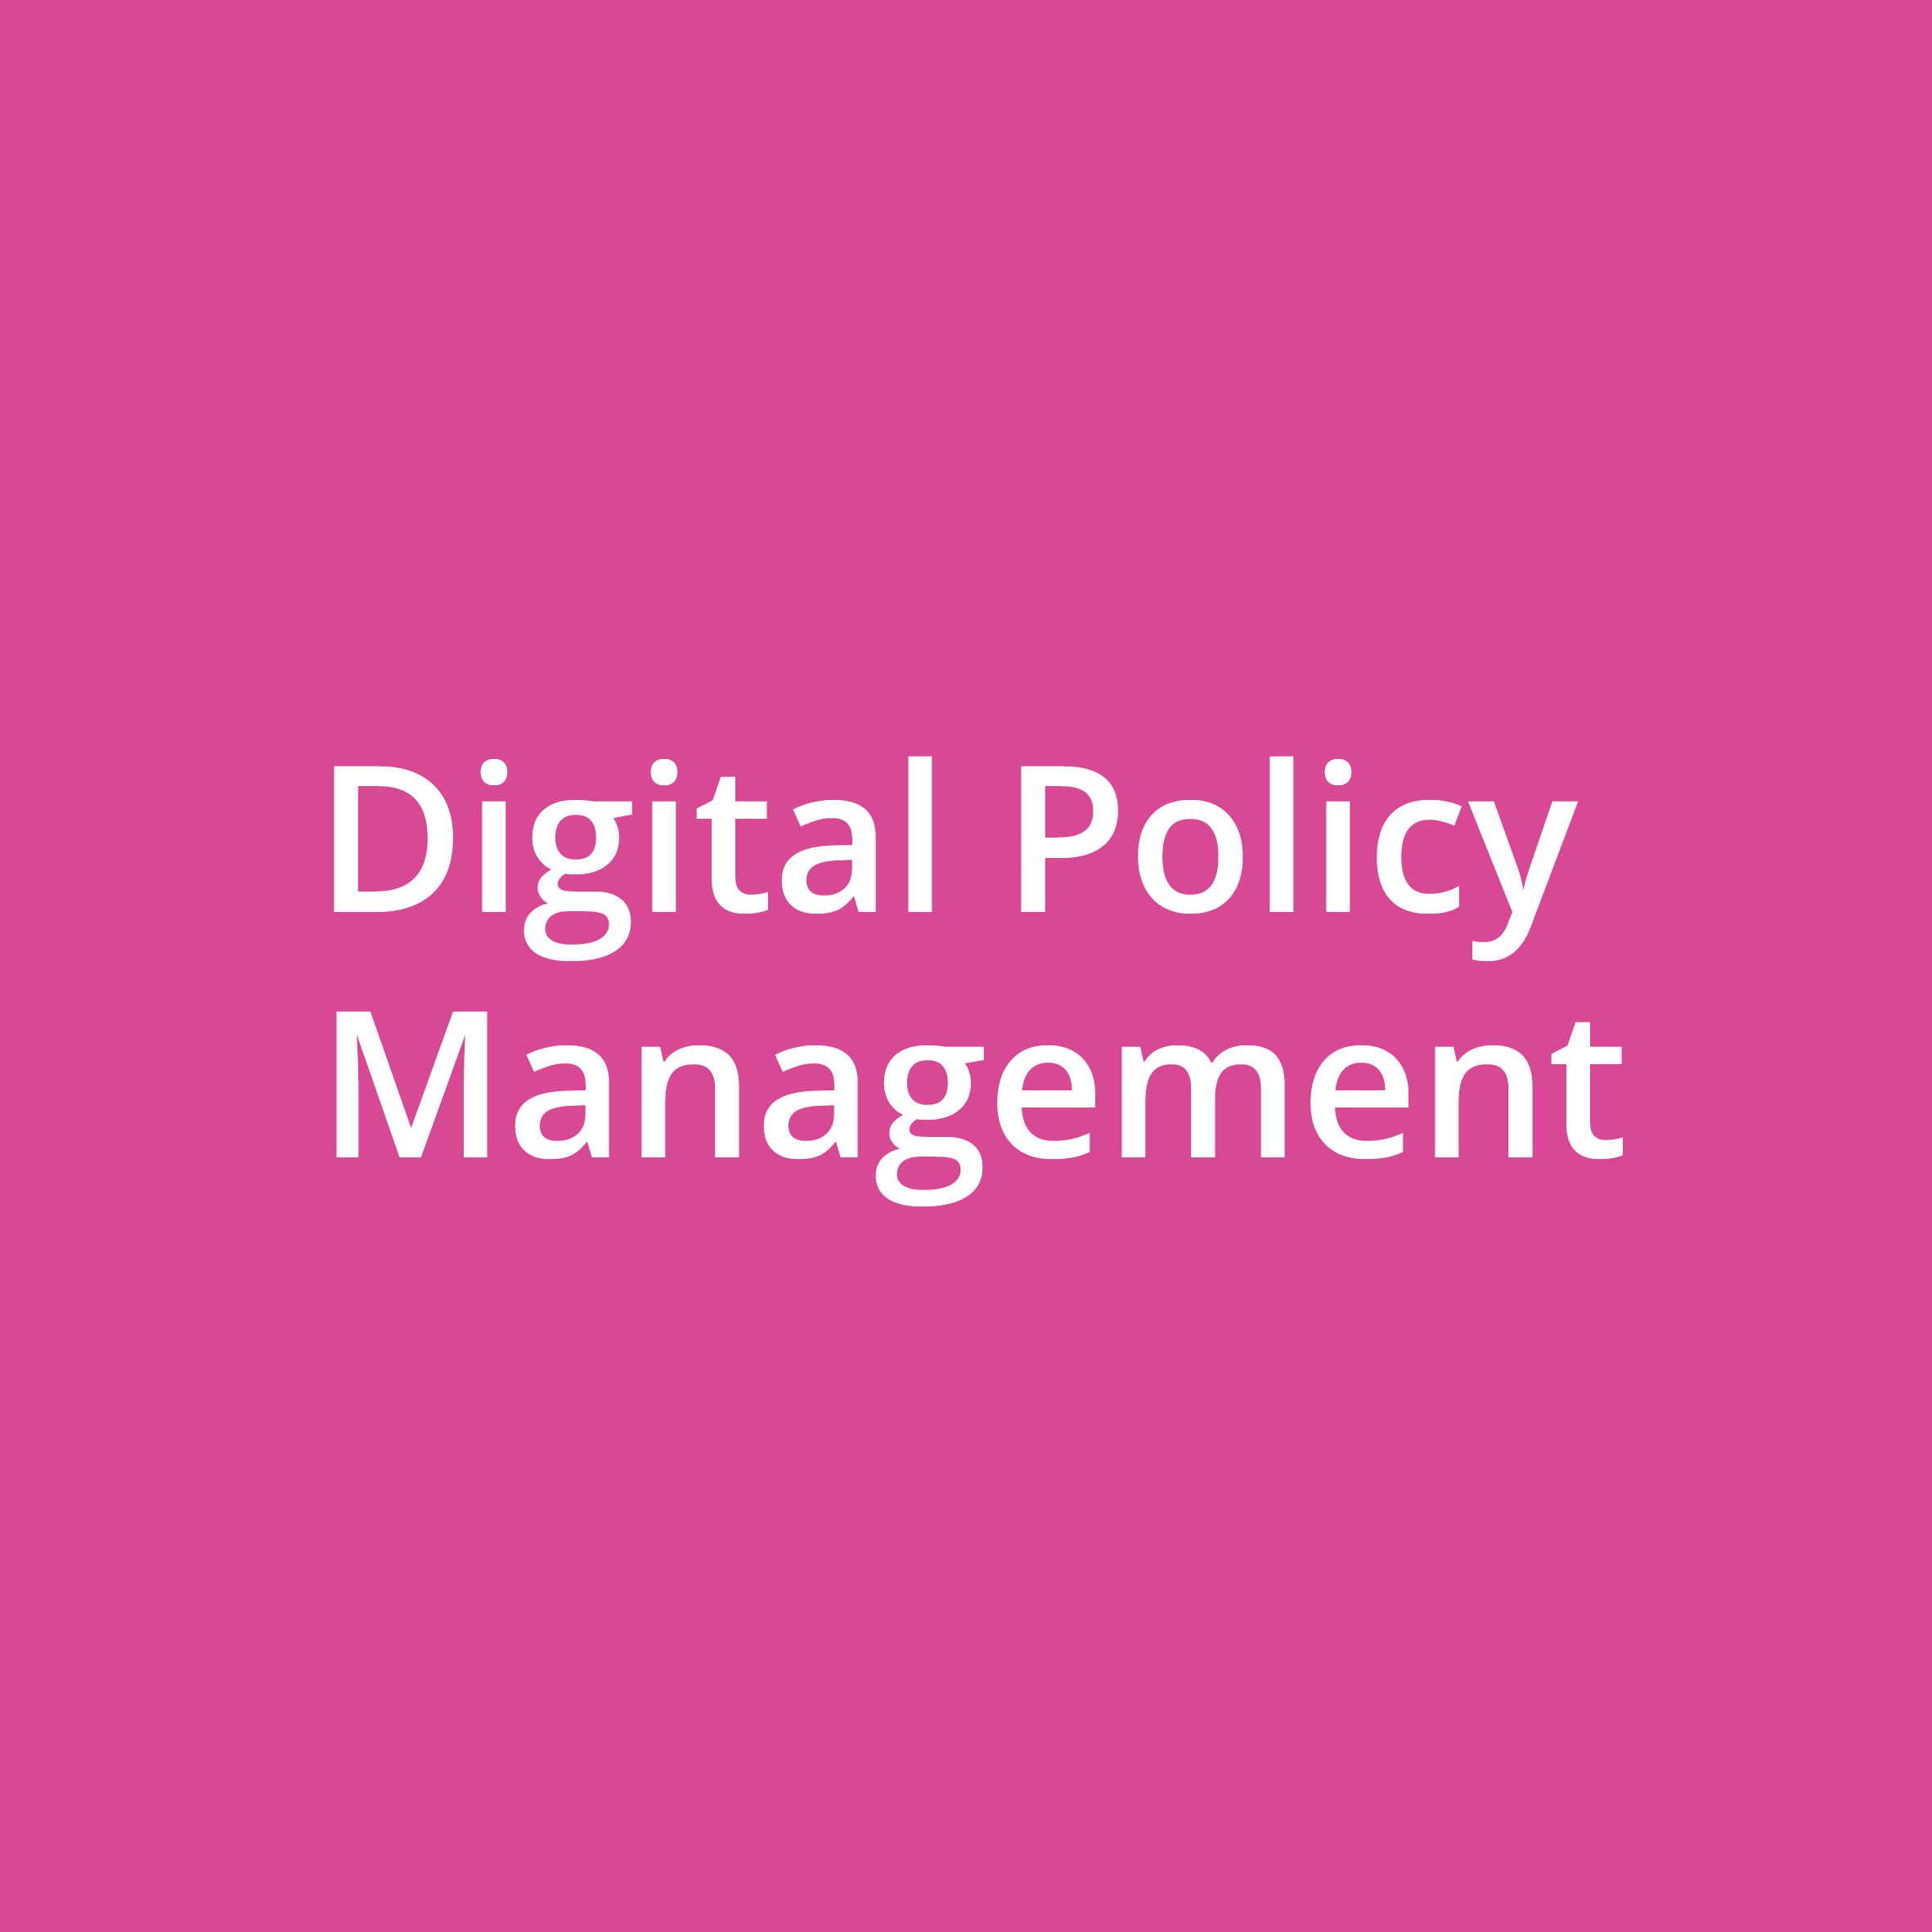 Digital Policy Management